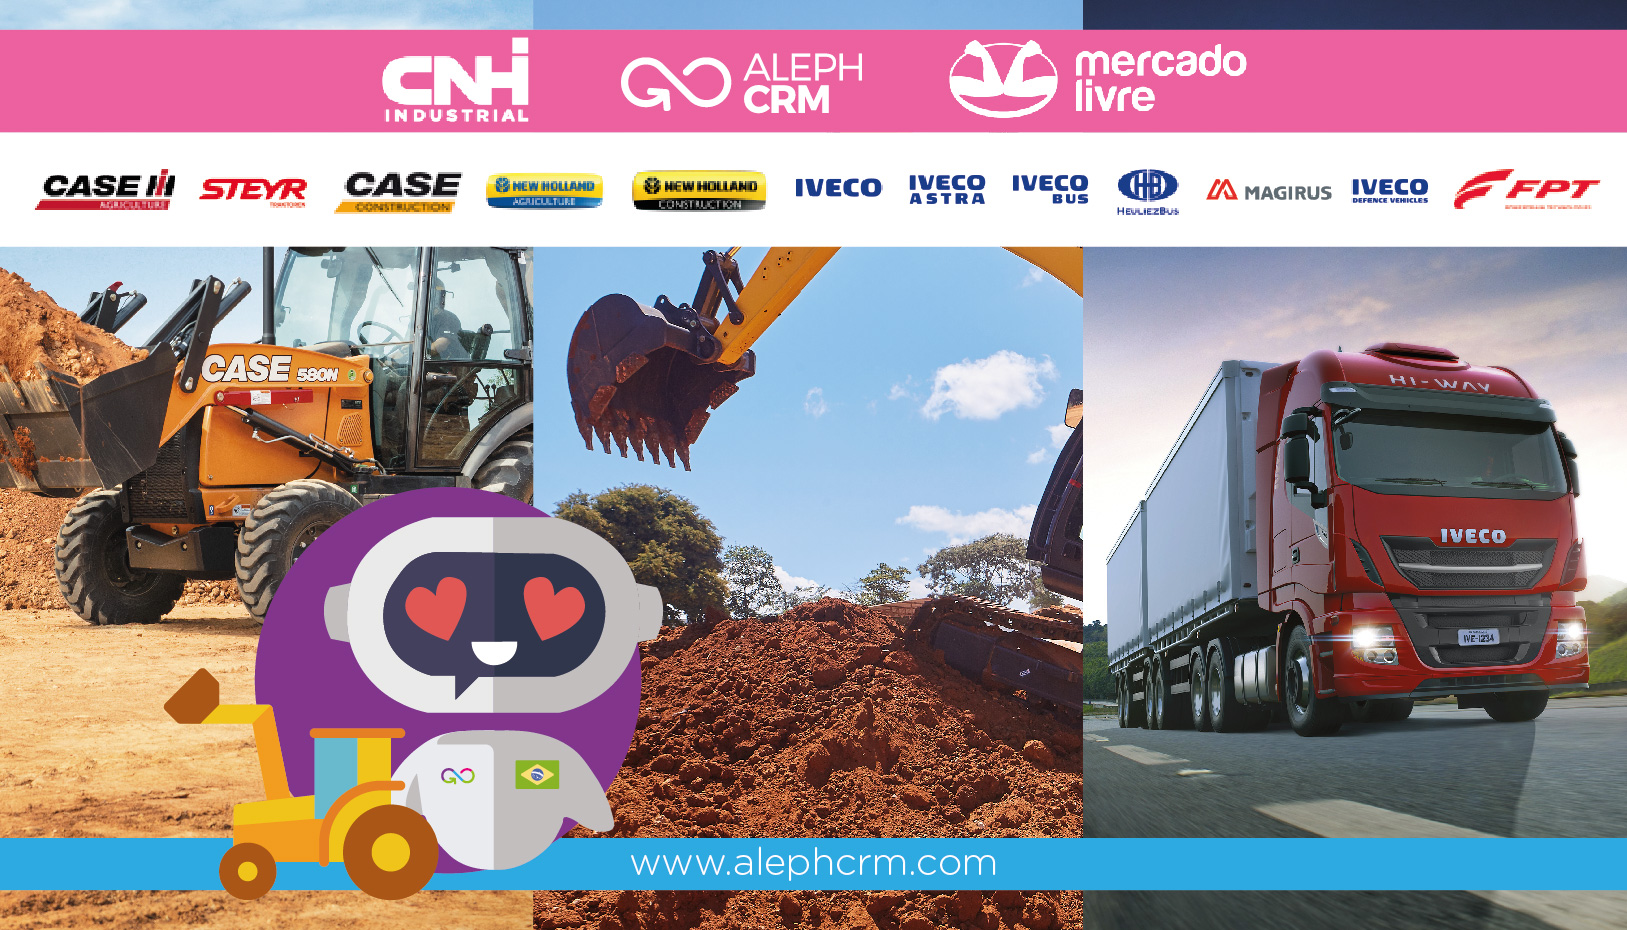 CNH Industrial, AlephCRM and Mercado Libre, starts engines towards electronic commerce